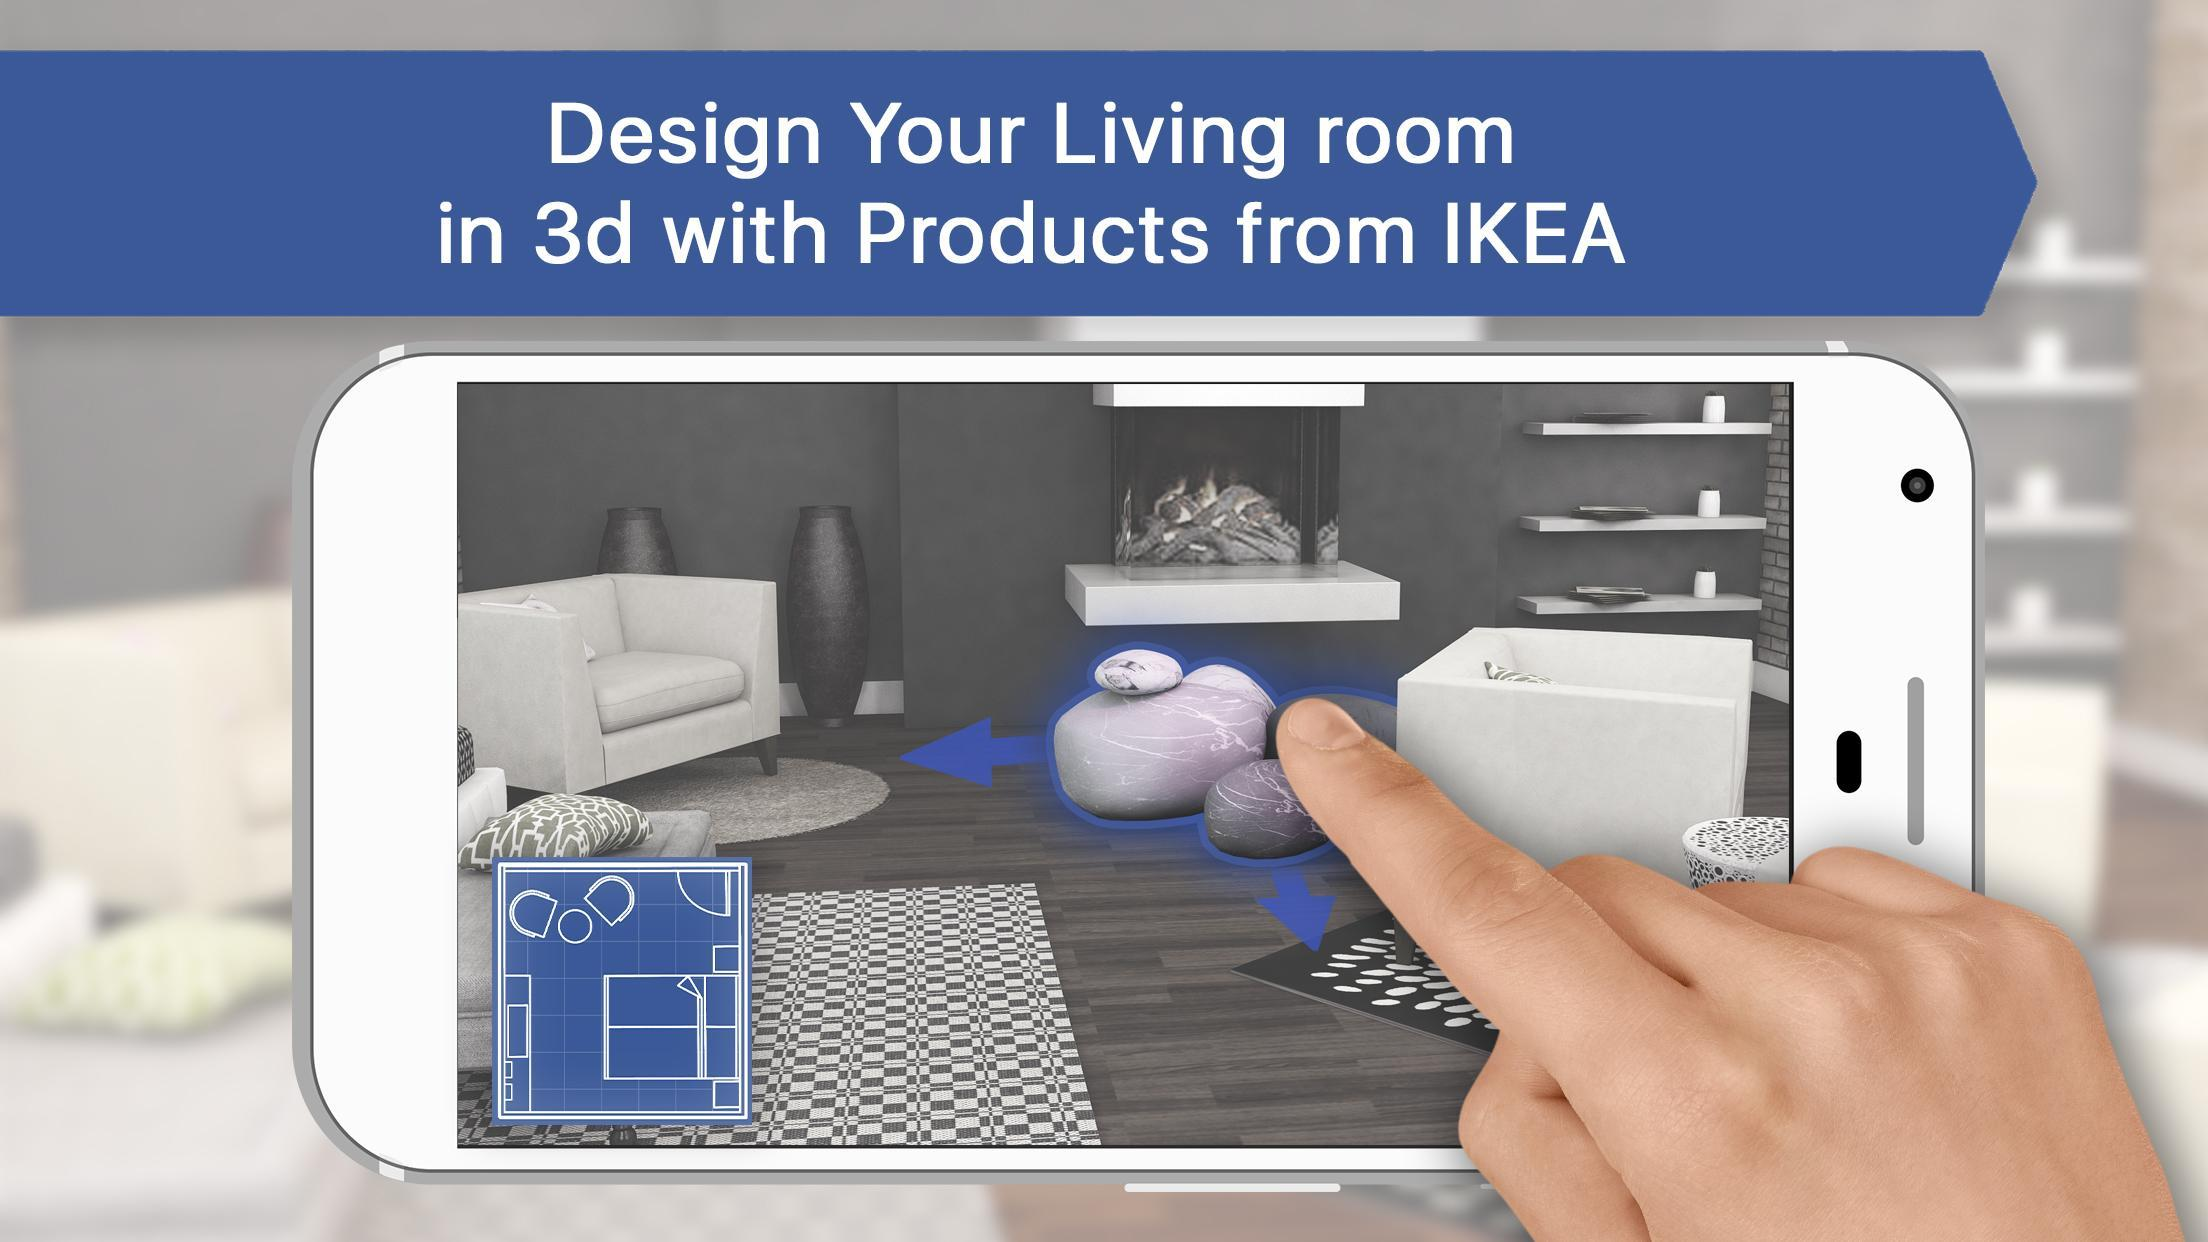 11D Living Room for IKEA - Interior Design Planner for Android - APK